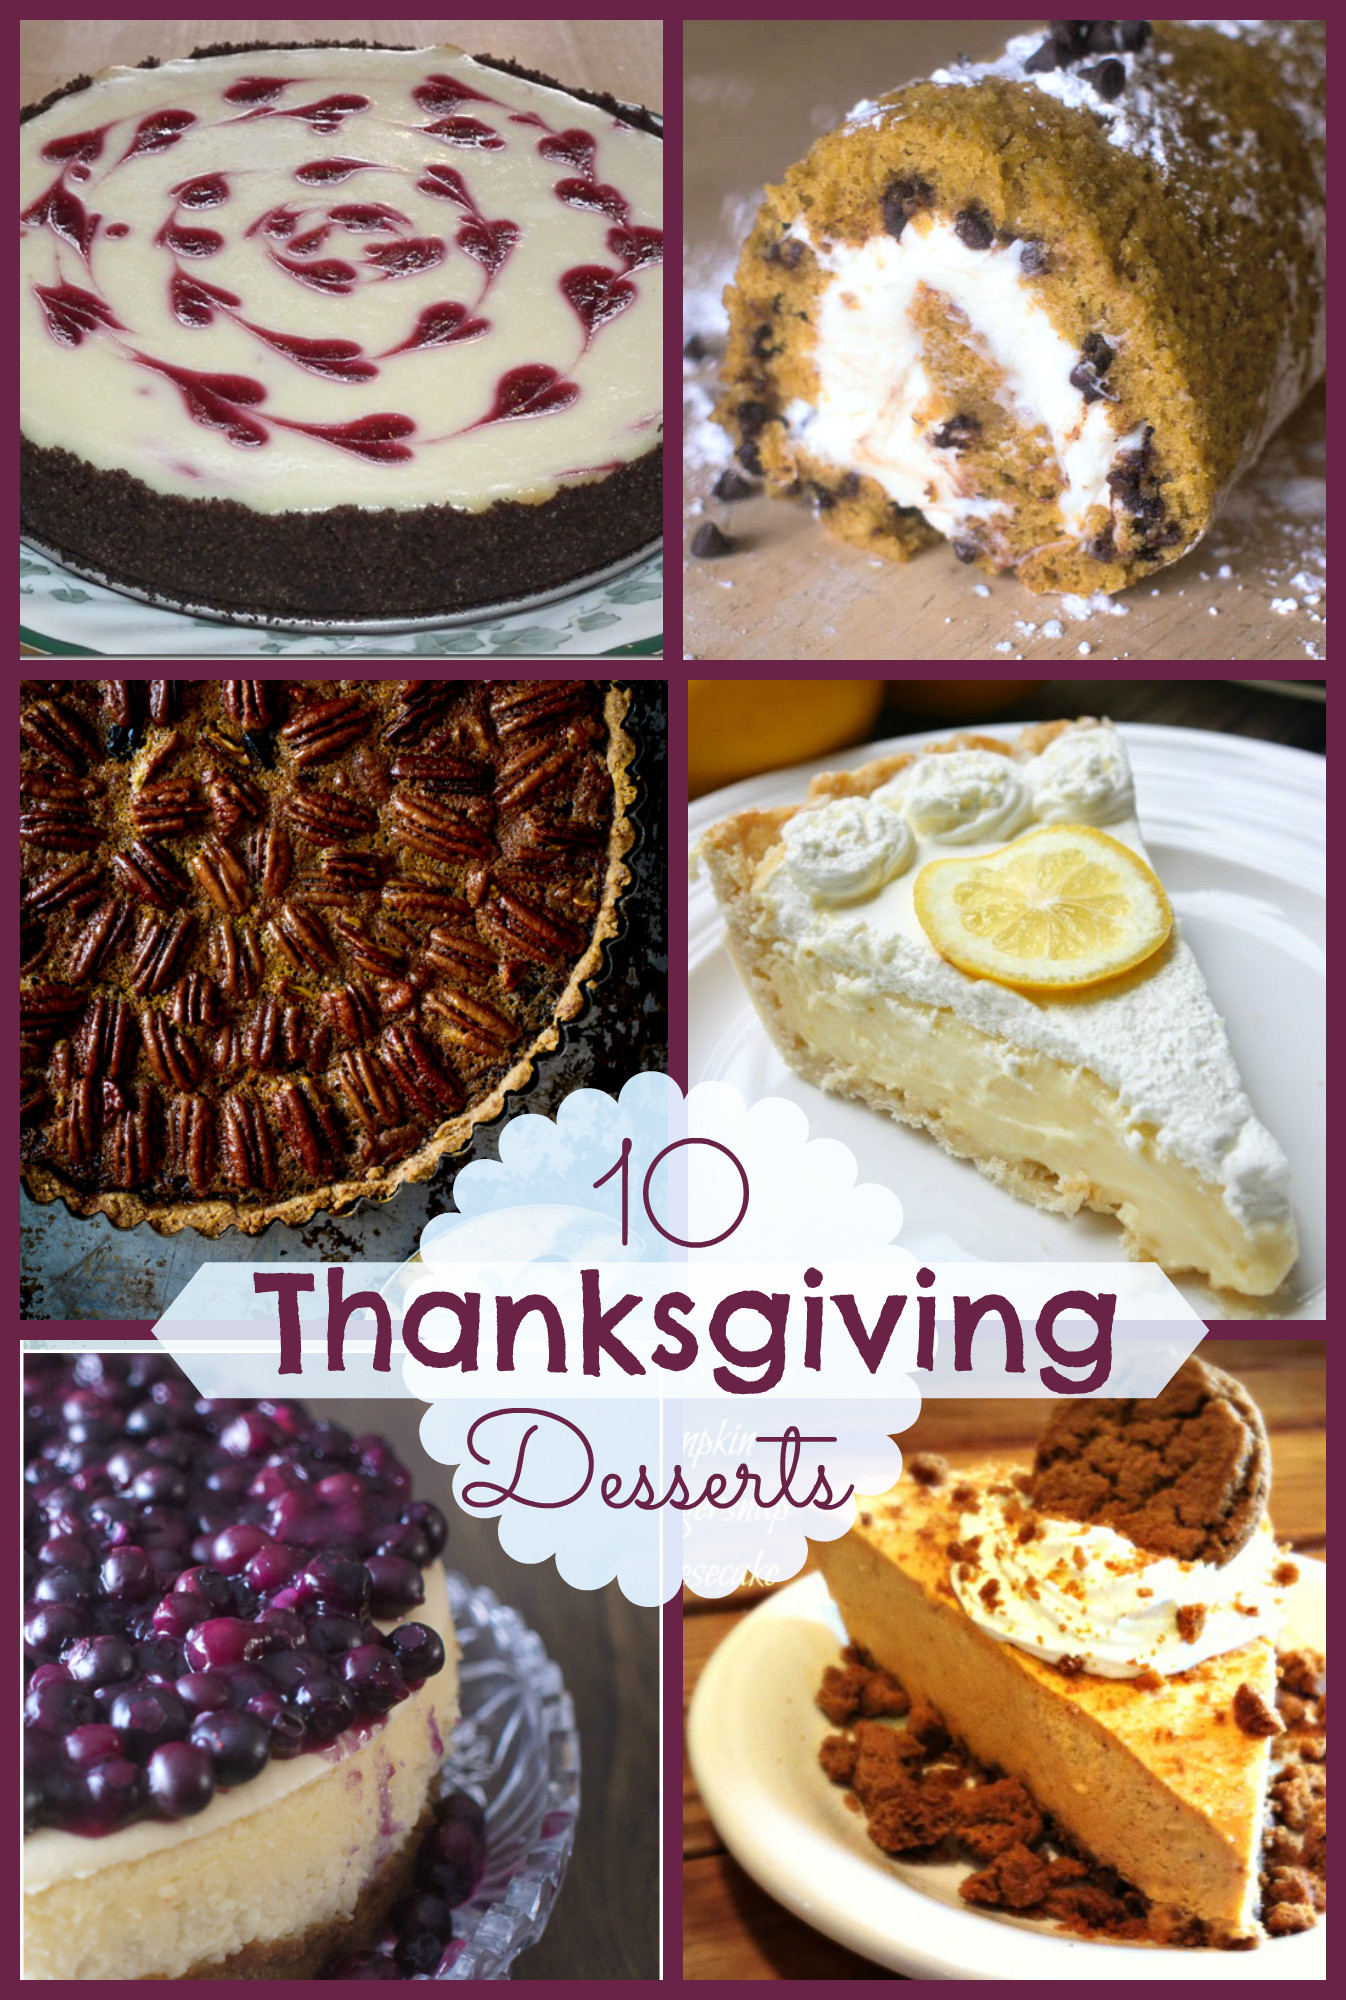 Pies To Make For Thanksgiving  10 Fabulous Thanksgiving Desserts